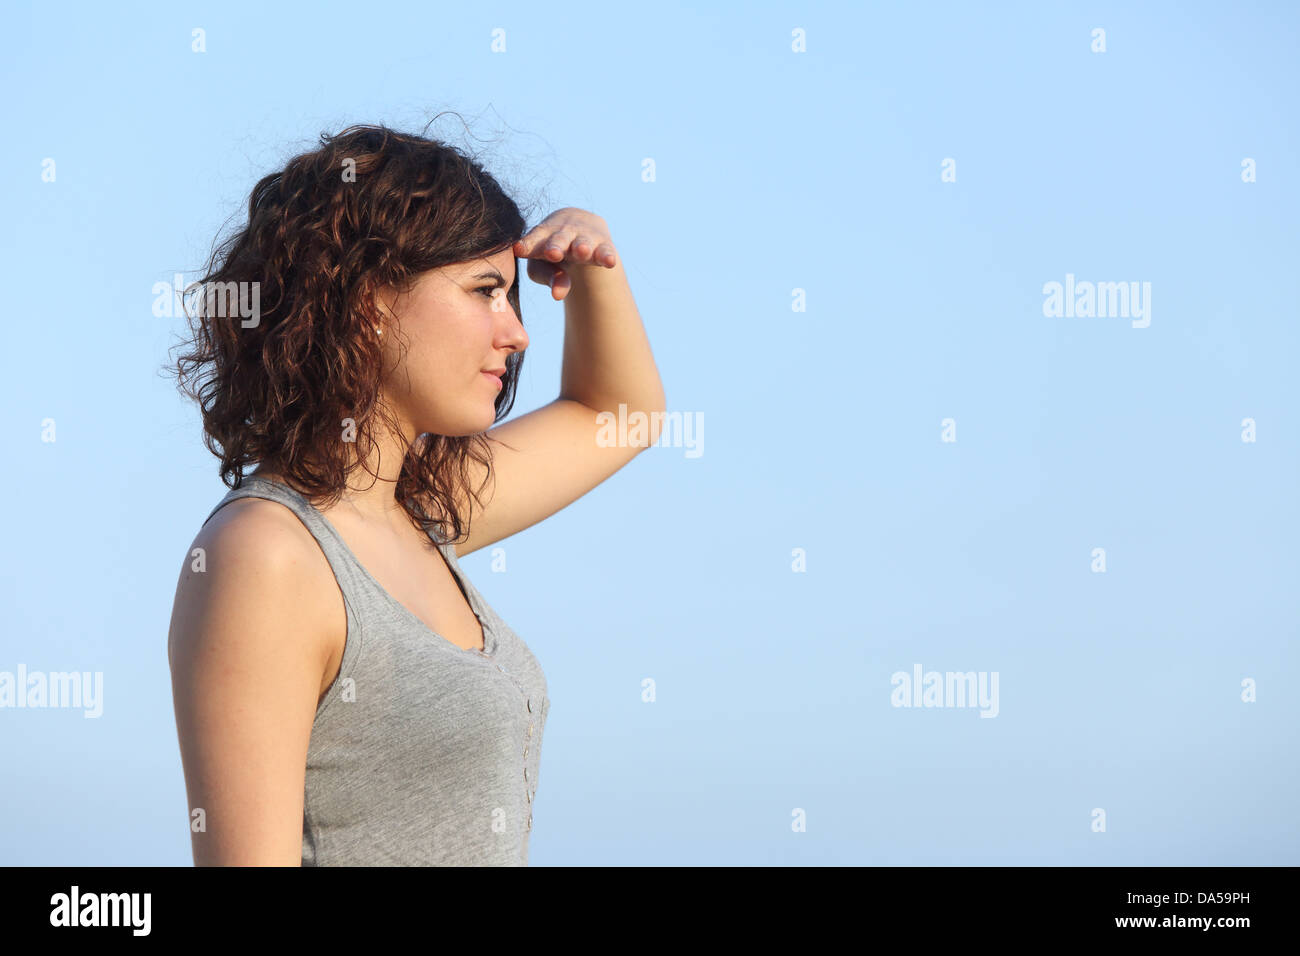 Attractive woman looking ahead with the hand in forehead with the blue sky in the background - Stock Image